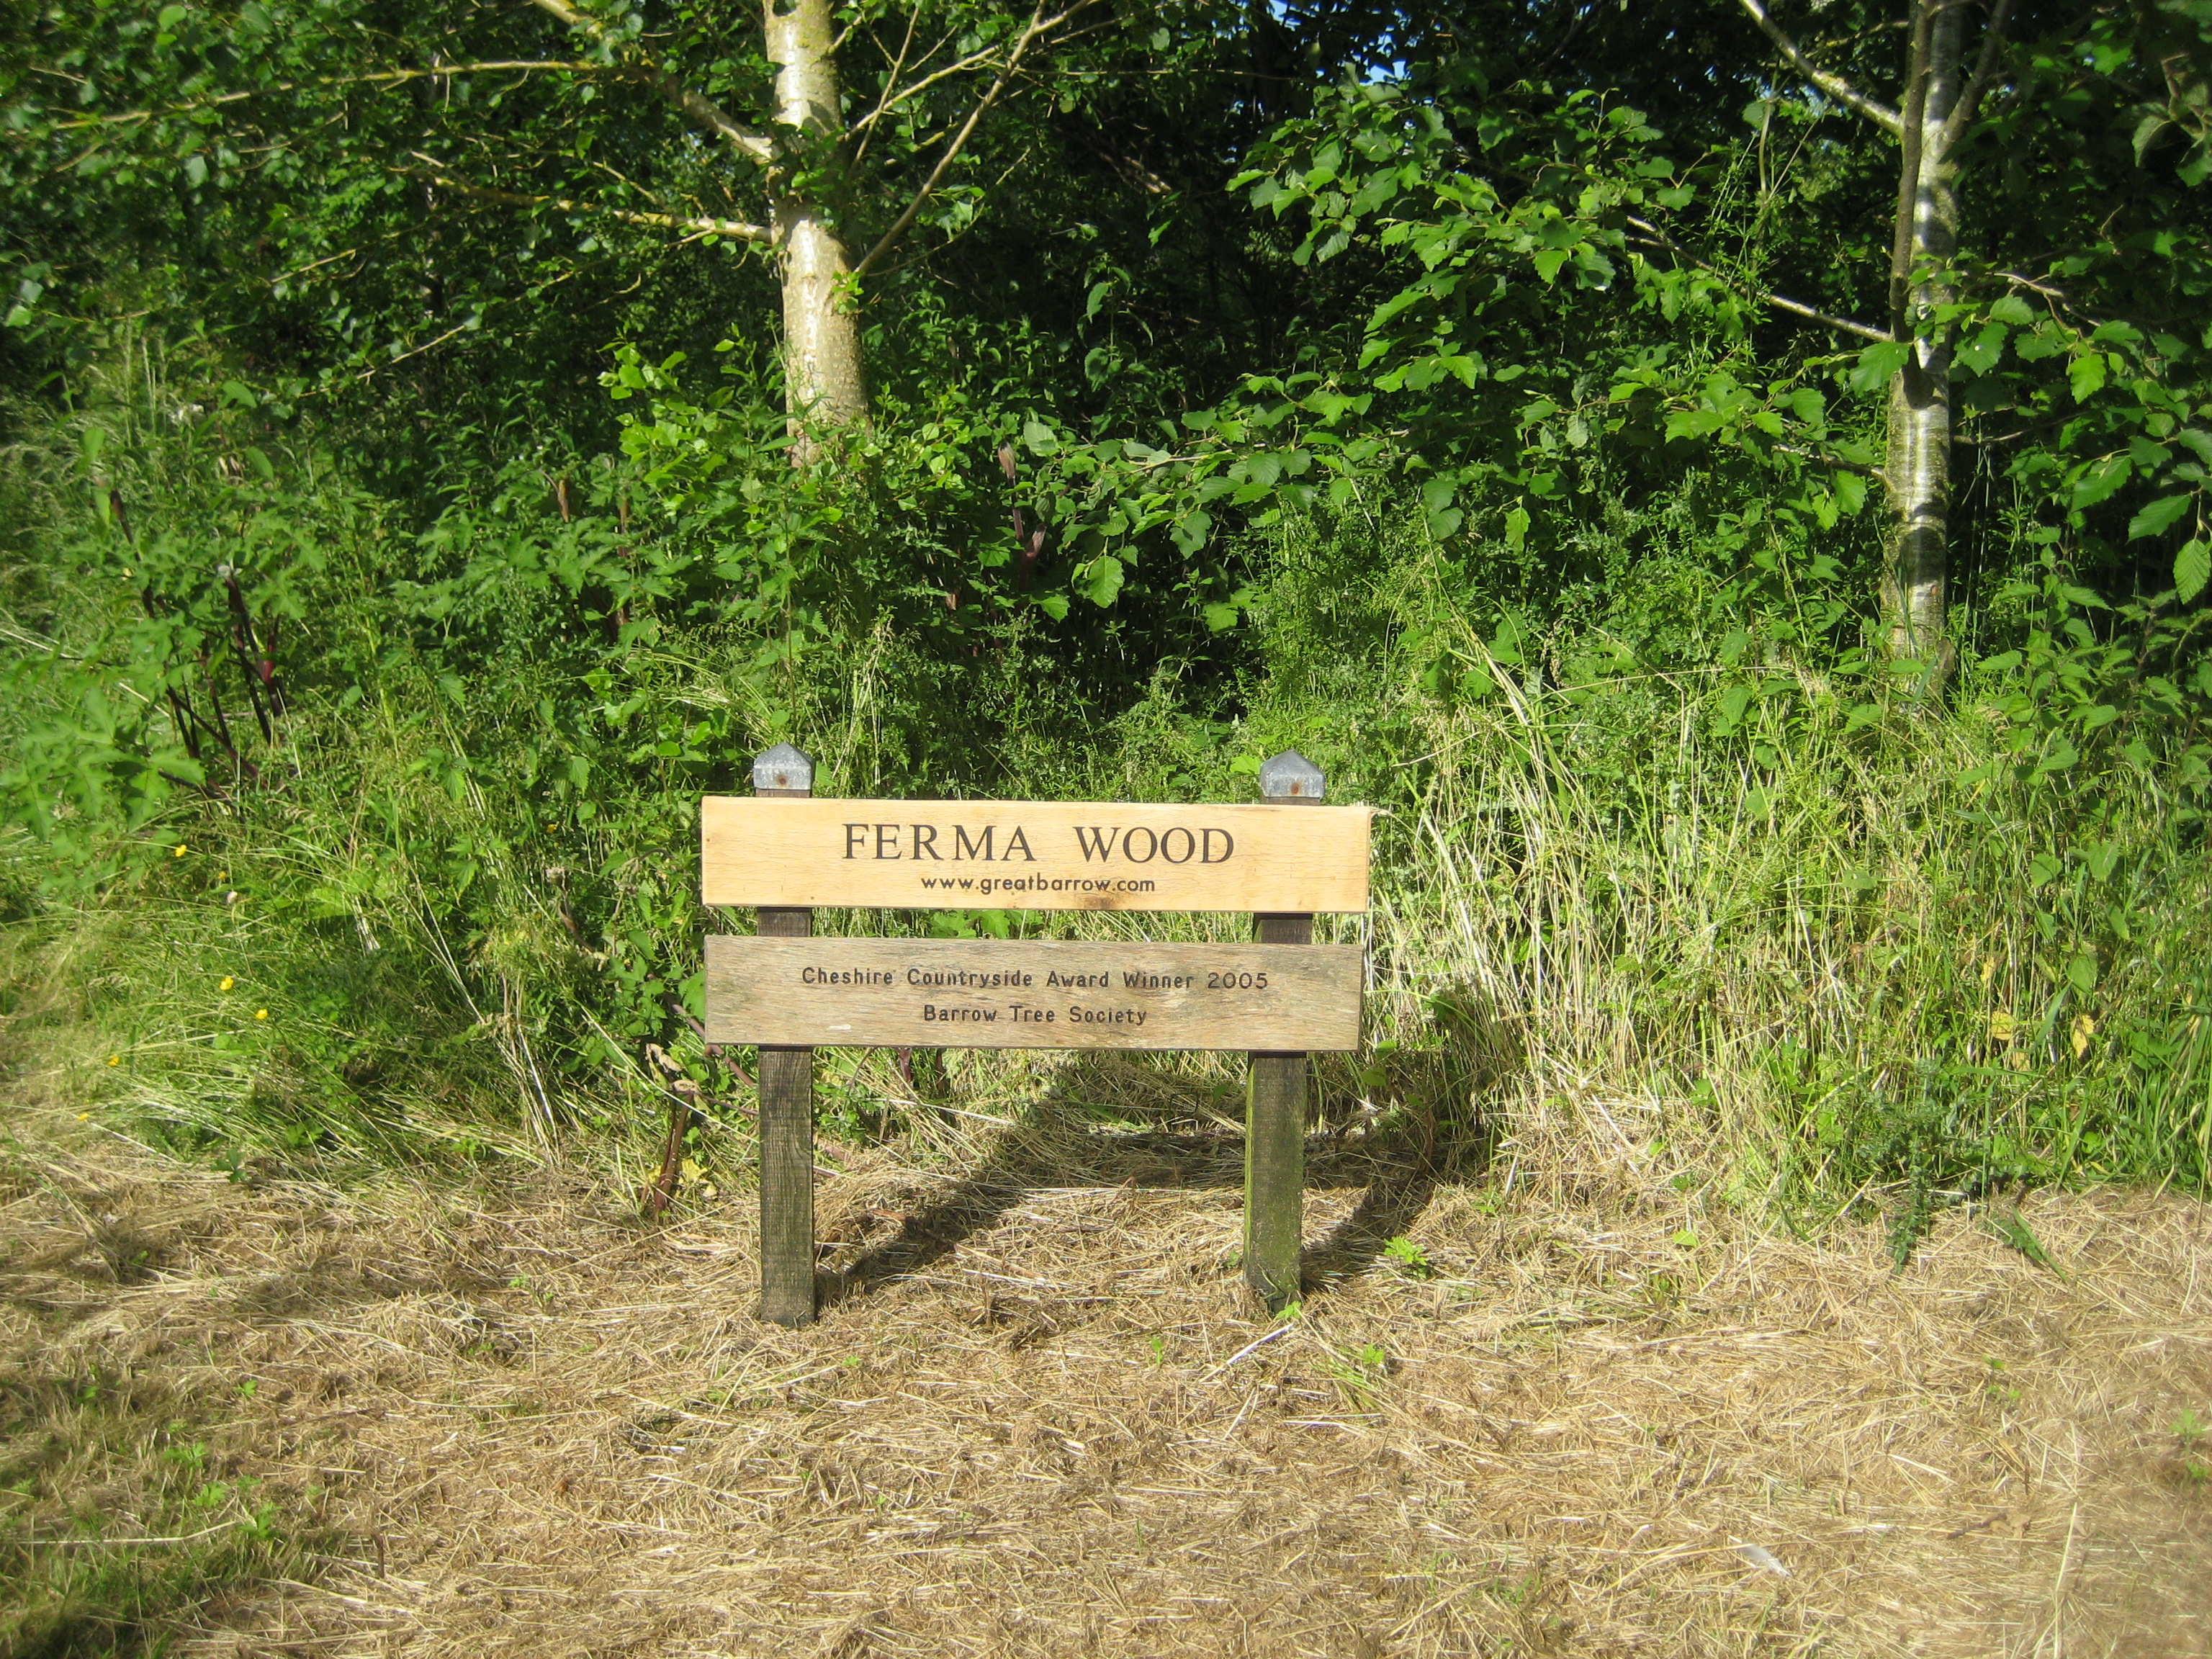 Ferma Wood, Barrow, Cheshire